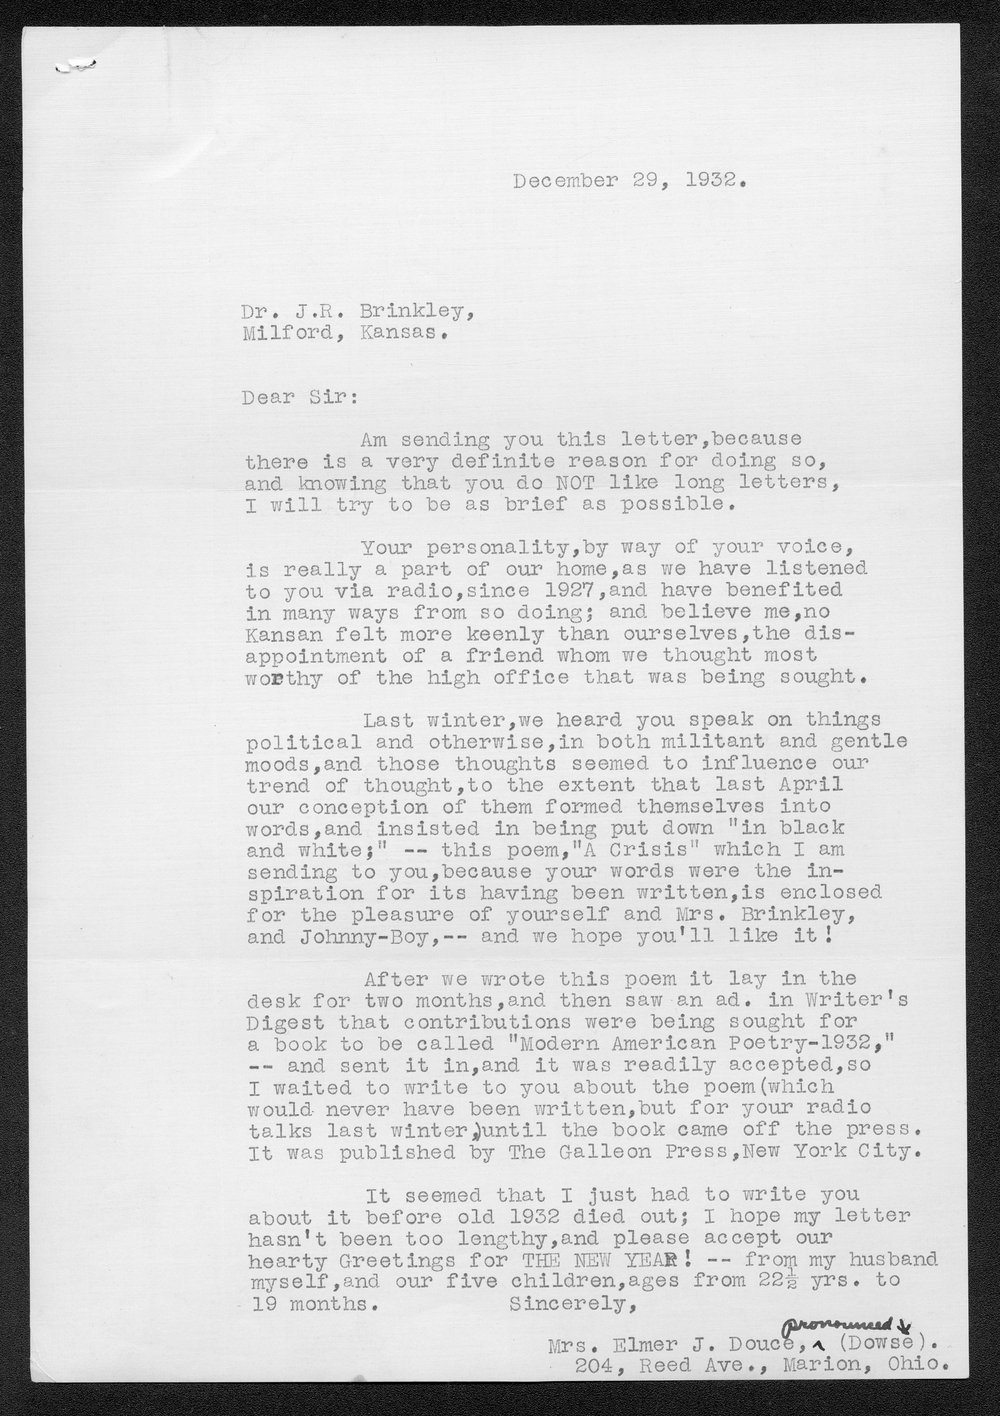 John R. Brinkley correspondence and political material - 1